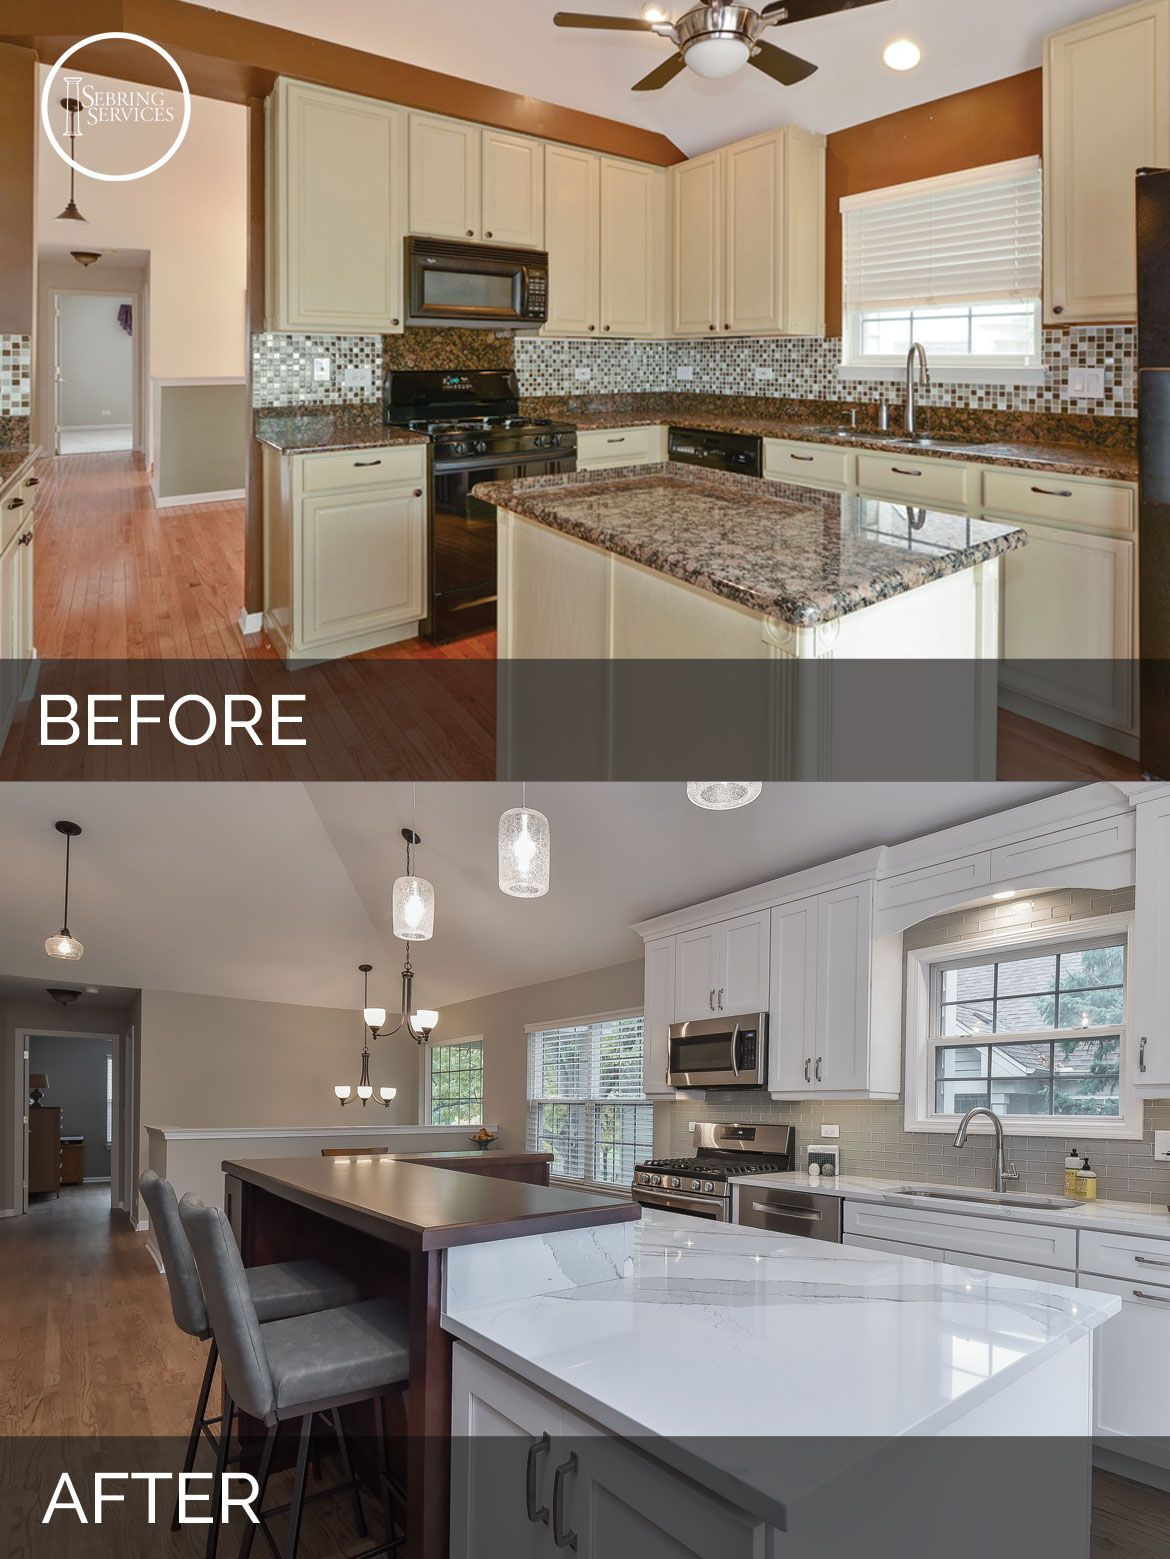 Bill & Carol's Kitchen Before & After Pictures | Kitchens and House